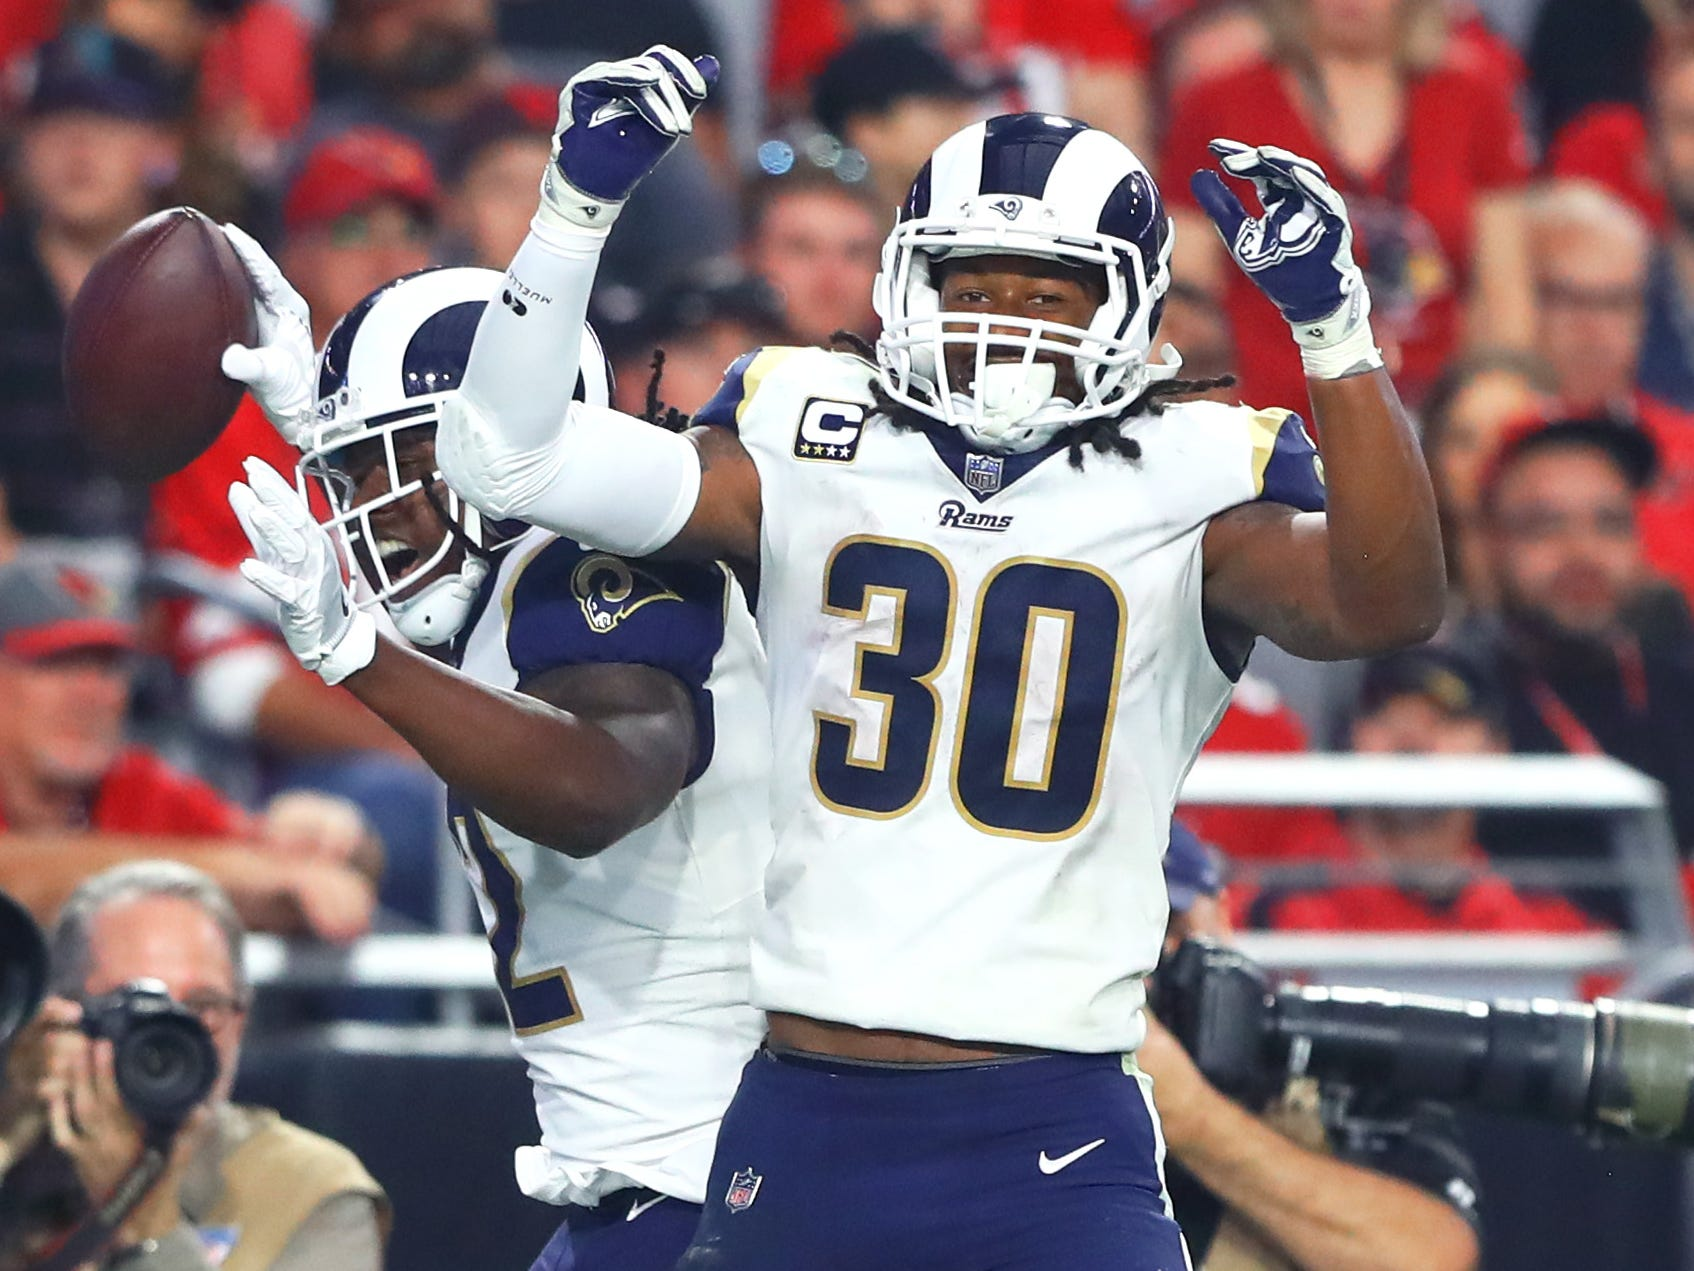 No. 3: Todd Gurley, RB, Rams